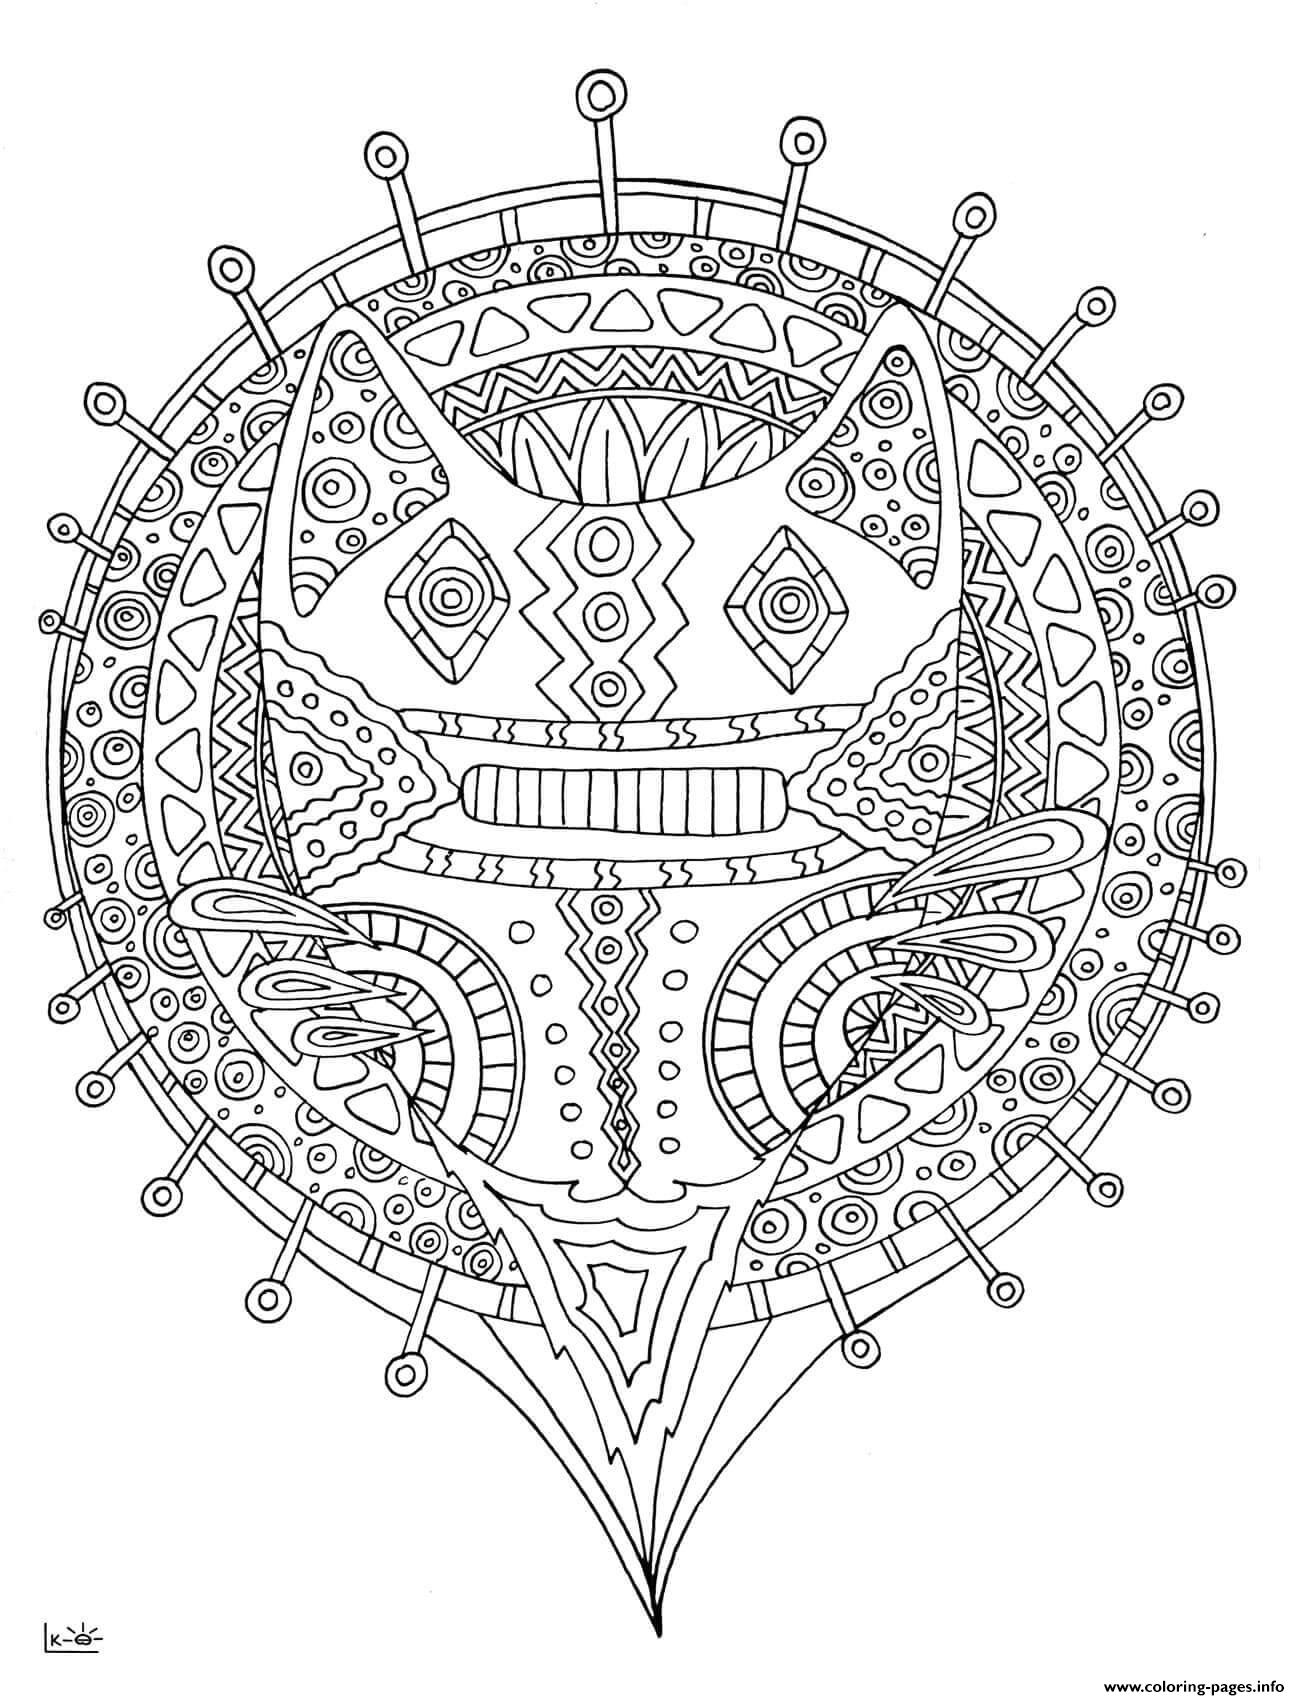 Forest Cat With Tribal Pattern Adults Coloring Pages Printable